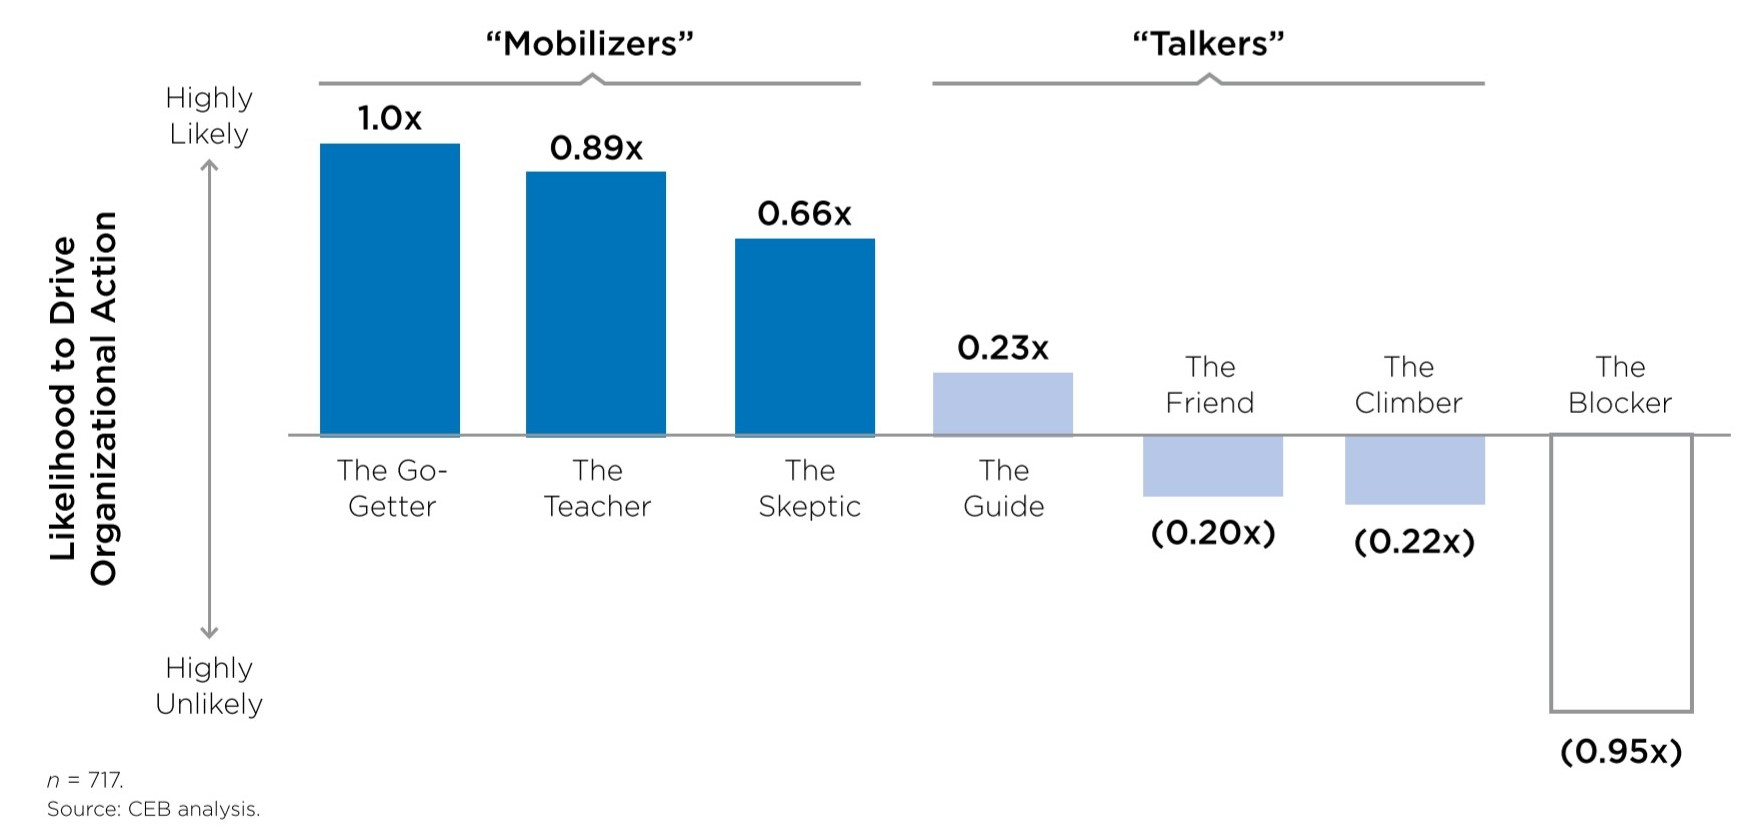 Overview of all the profiles and how common each of them are. The graph shows that Mobilizers are the ones likely to drive organizational action, the talkers balance each other out - some will help others won't, and the blockers are unlikely to.